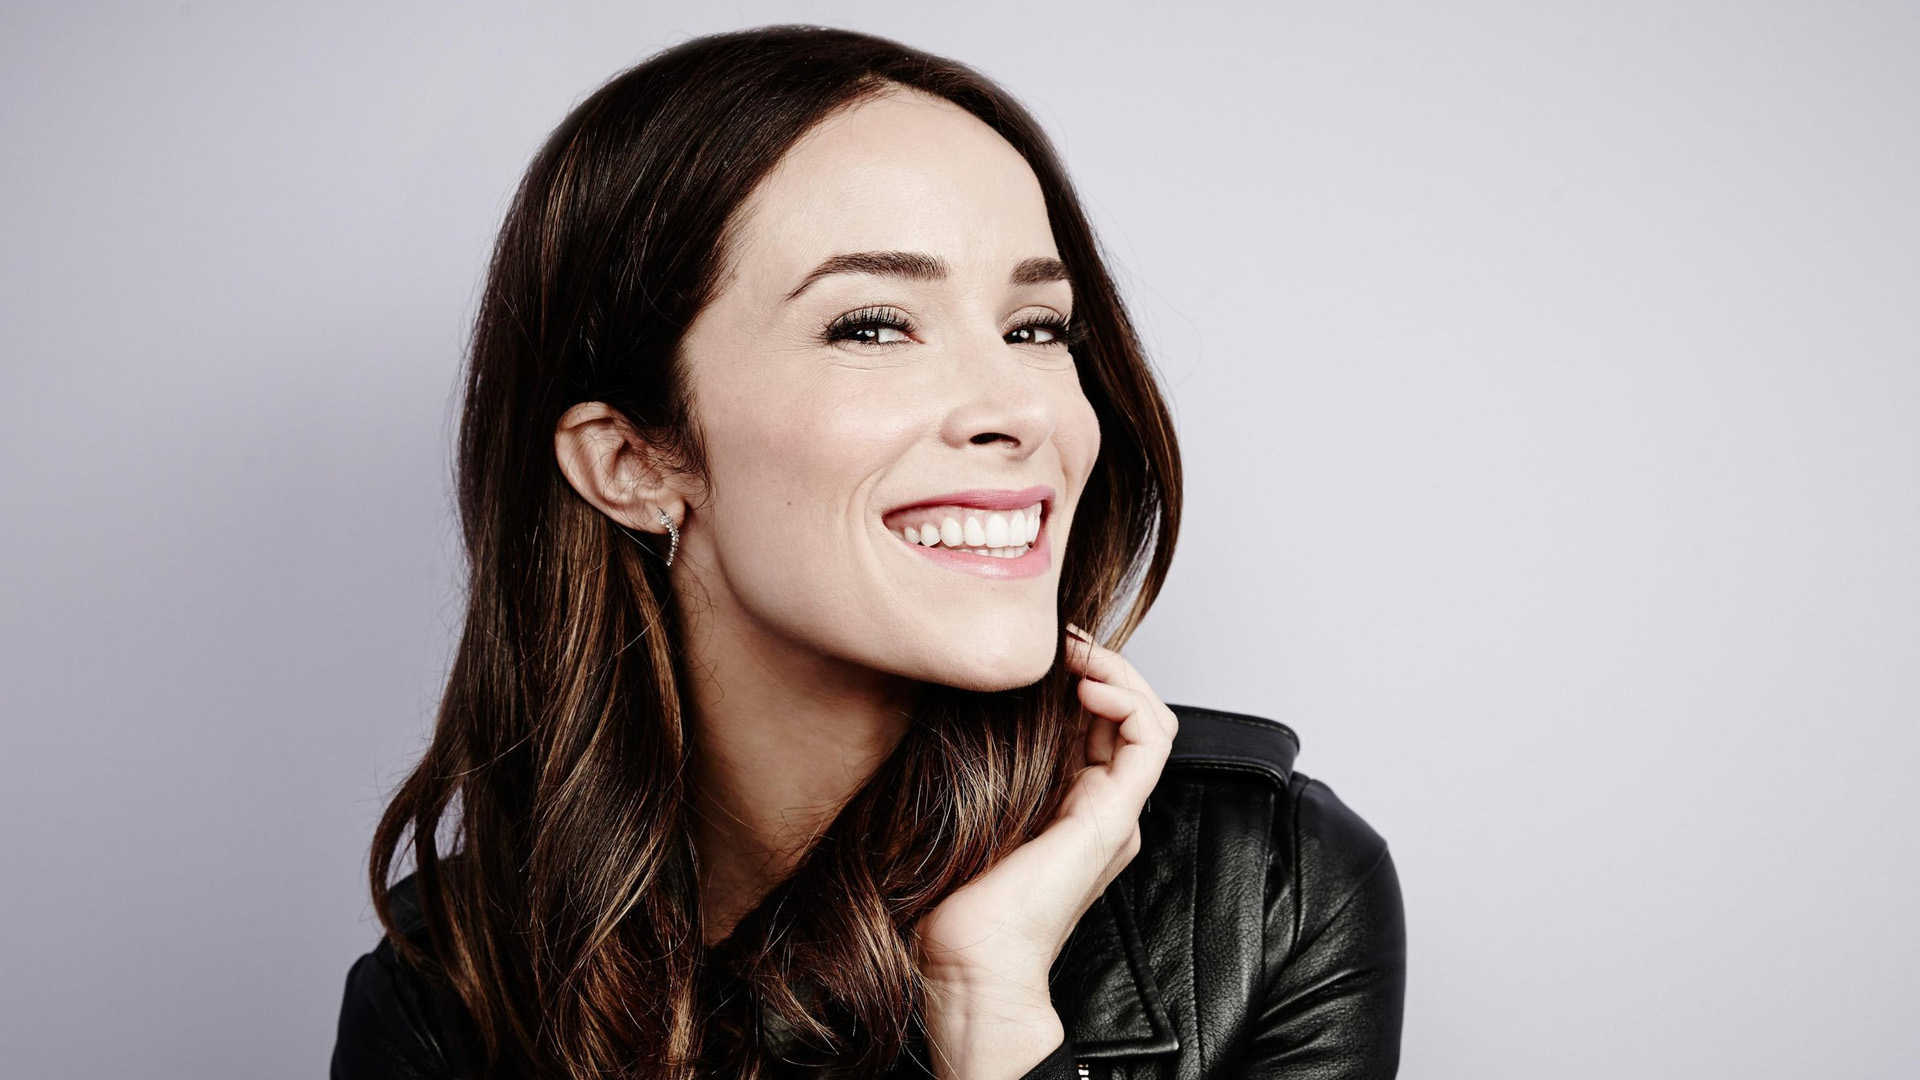 abigail spencer smile wallpaper 53576